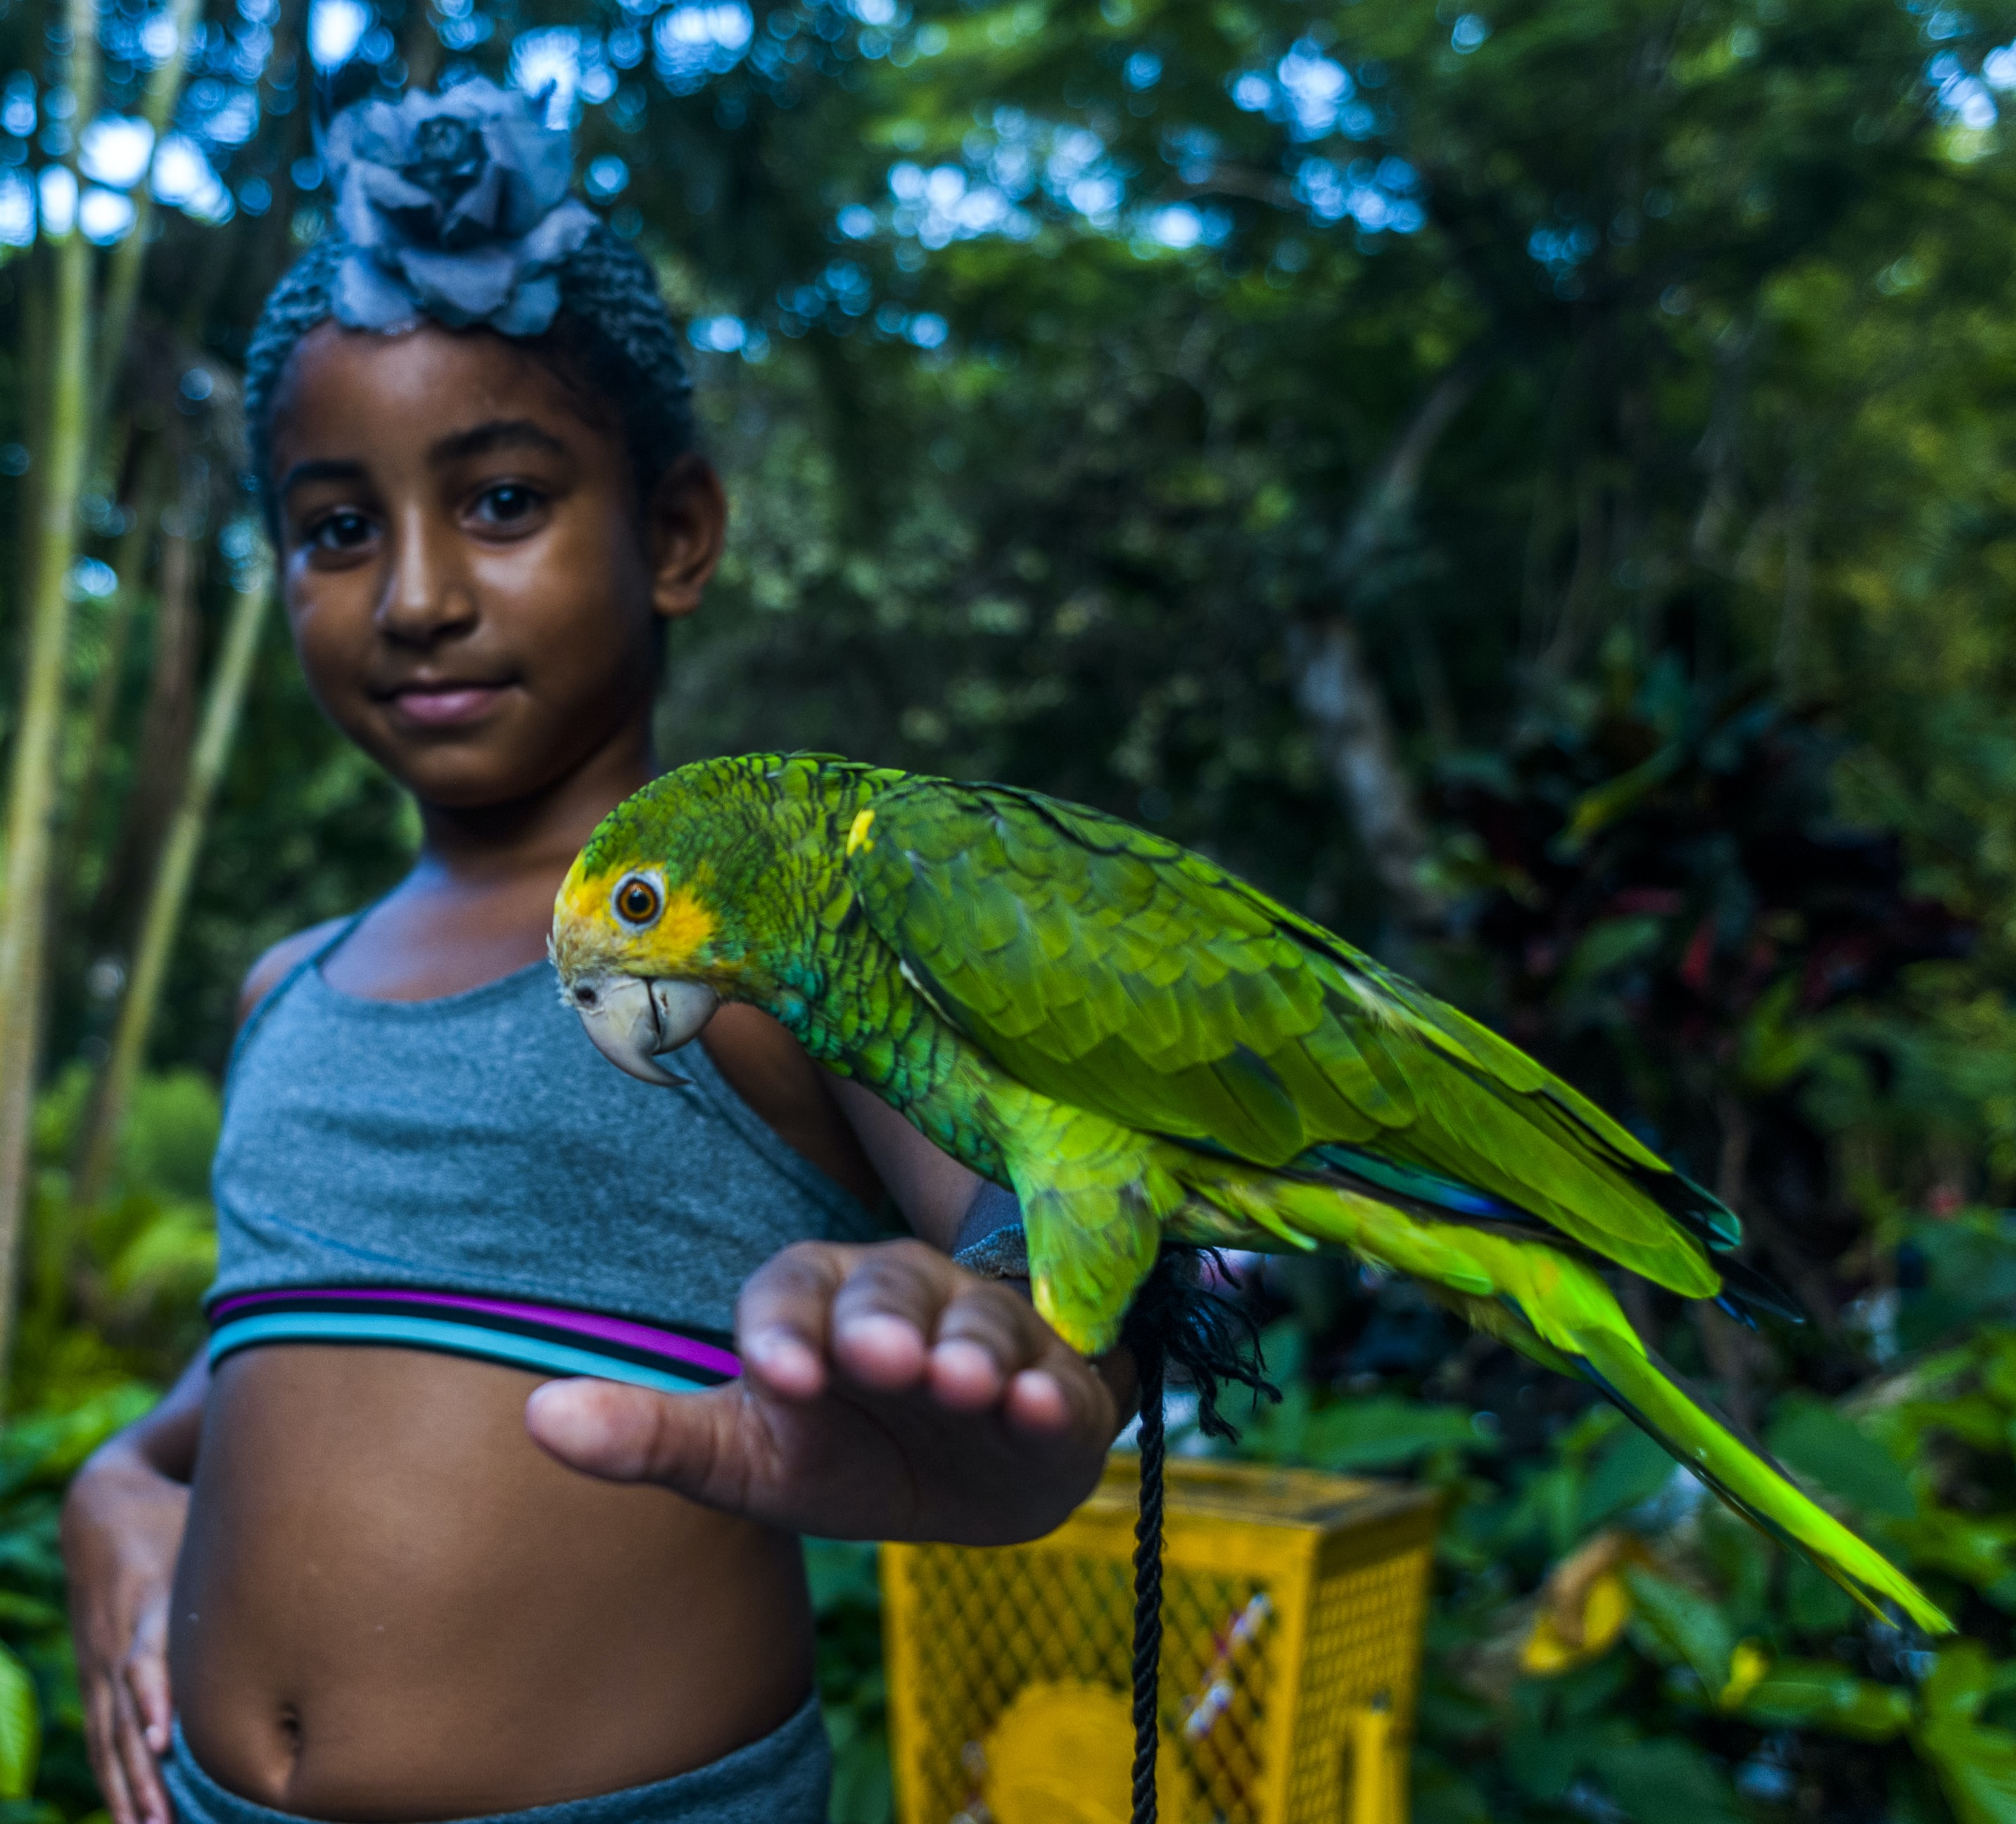 green parrot perched on girl's arm